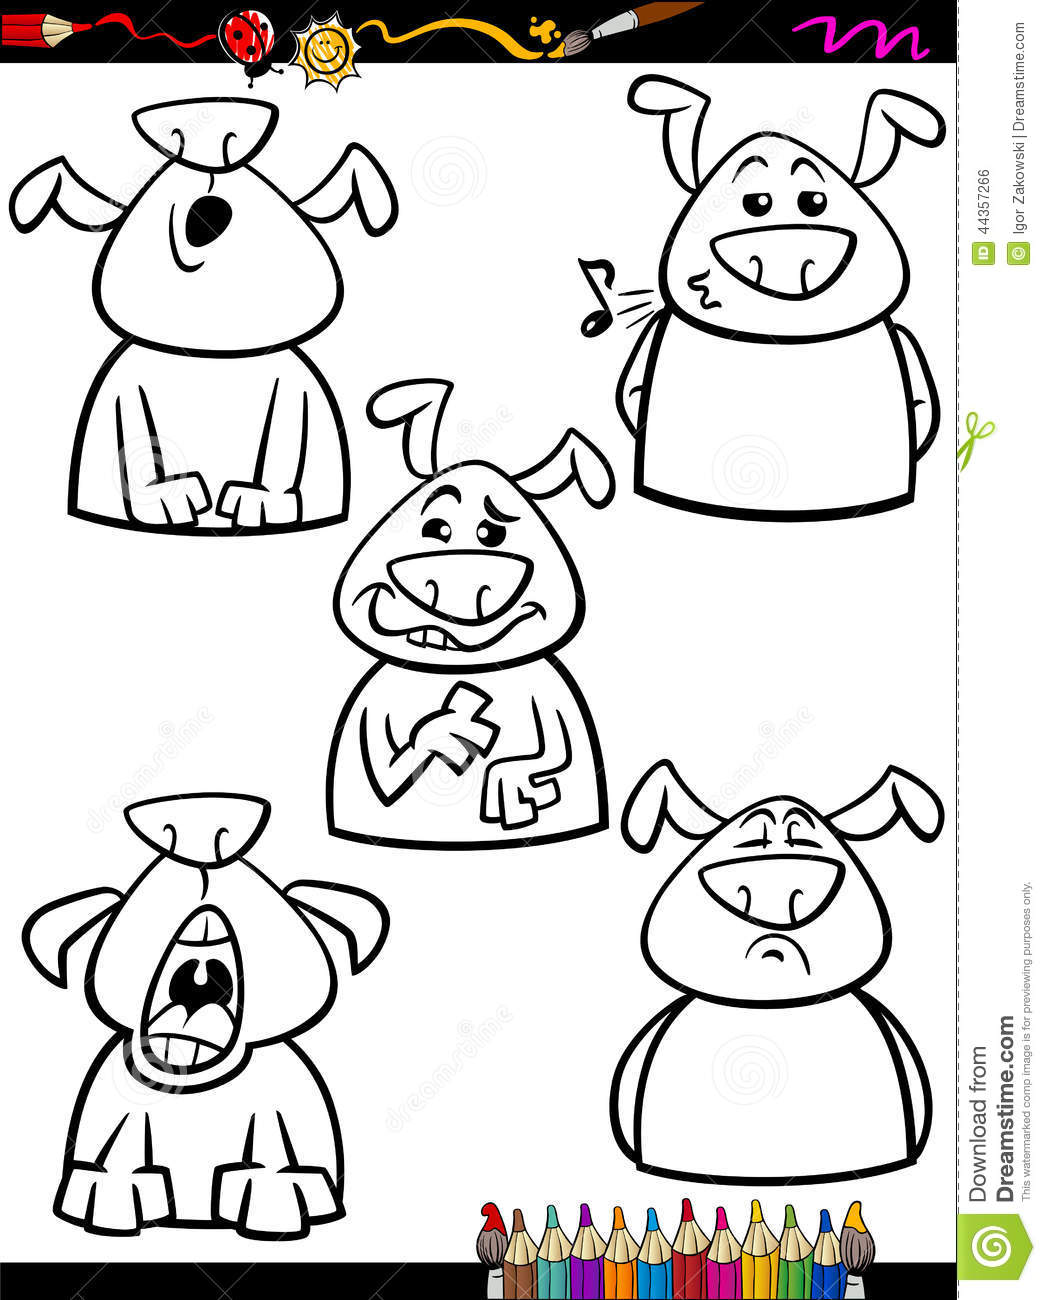 Free coloring pages emotions - Royalty Free Vector Download Dog Emotion Set Cartoon Coloring Page